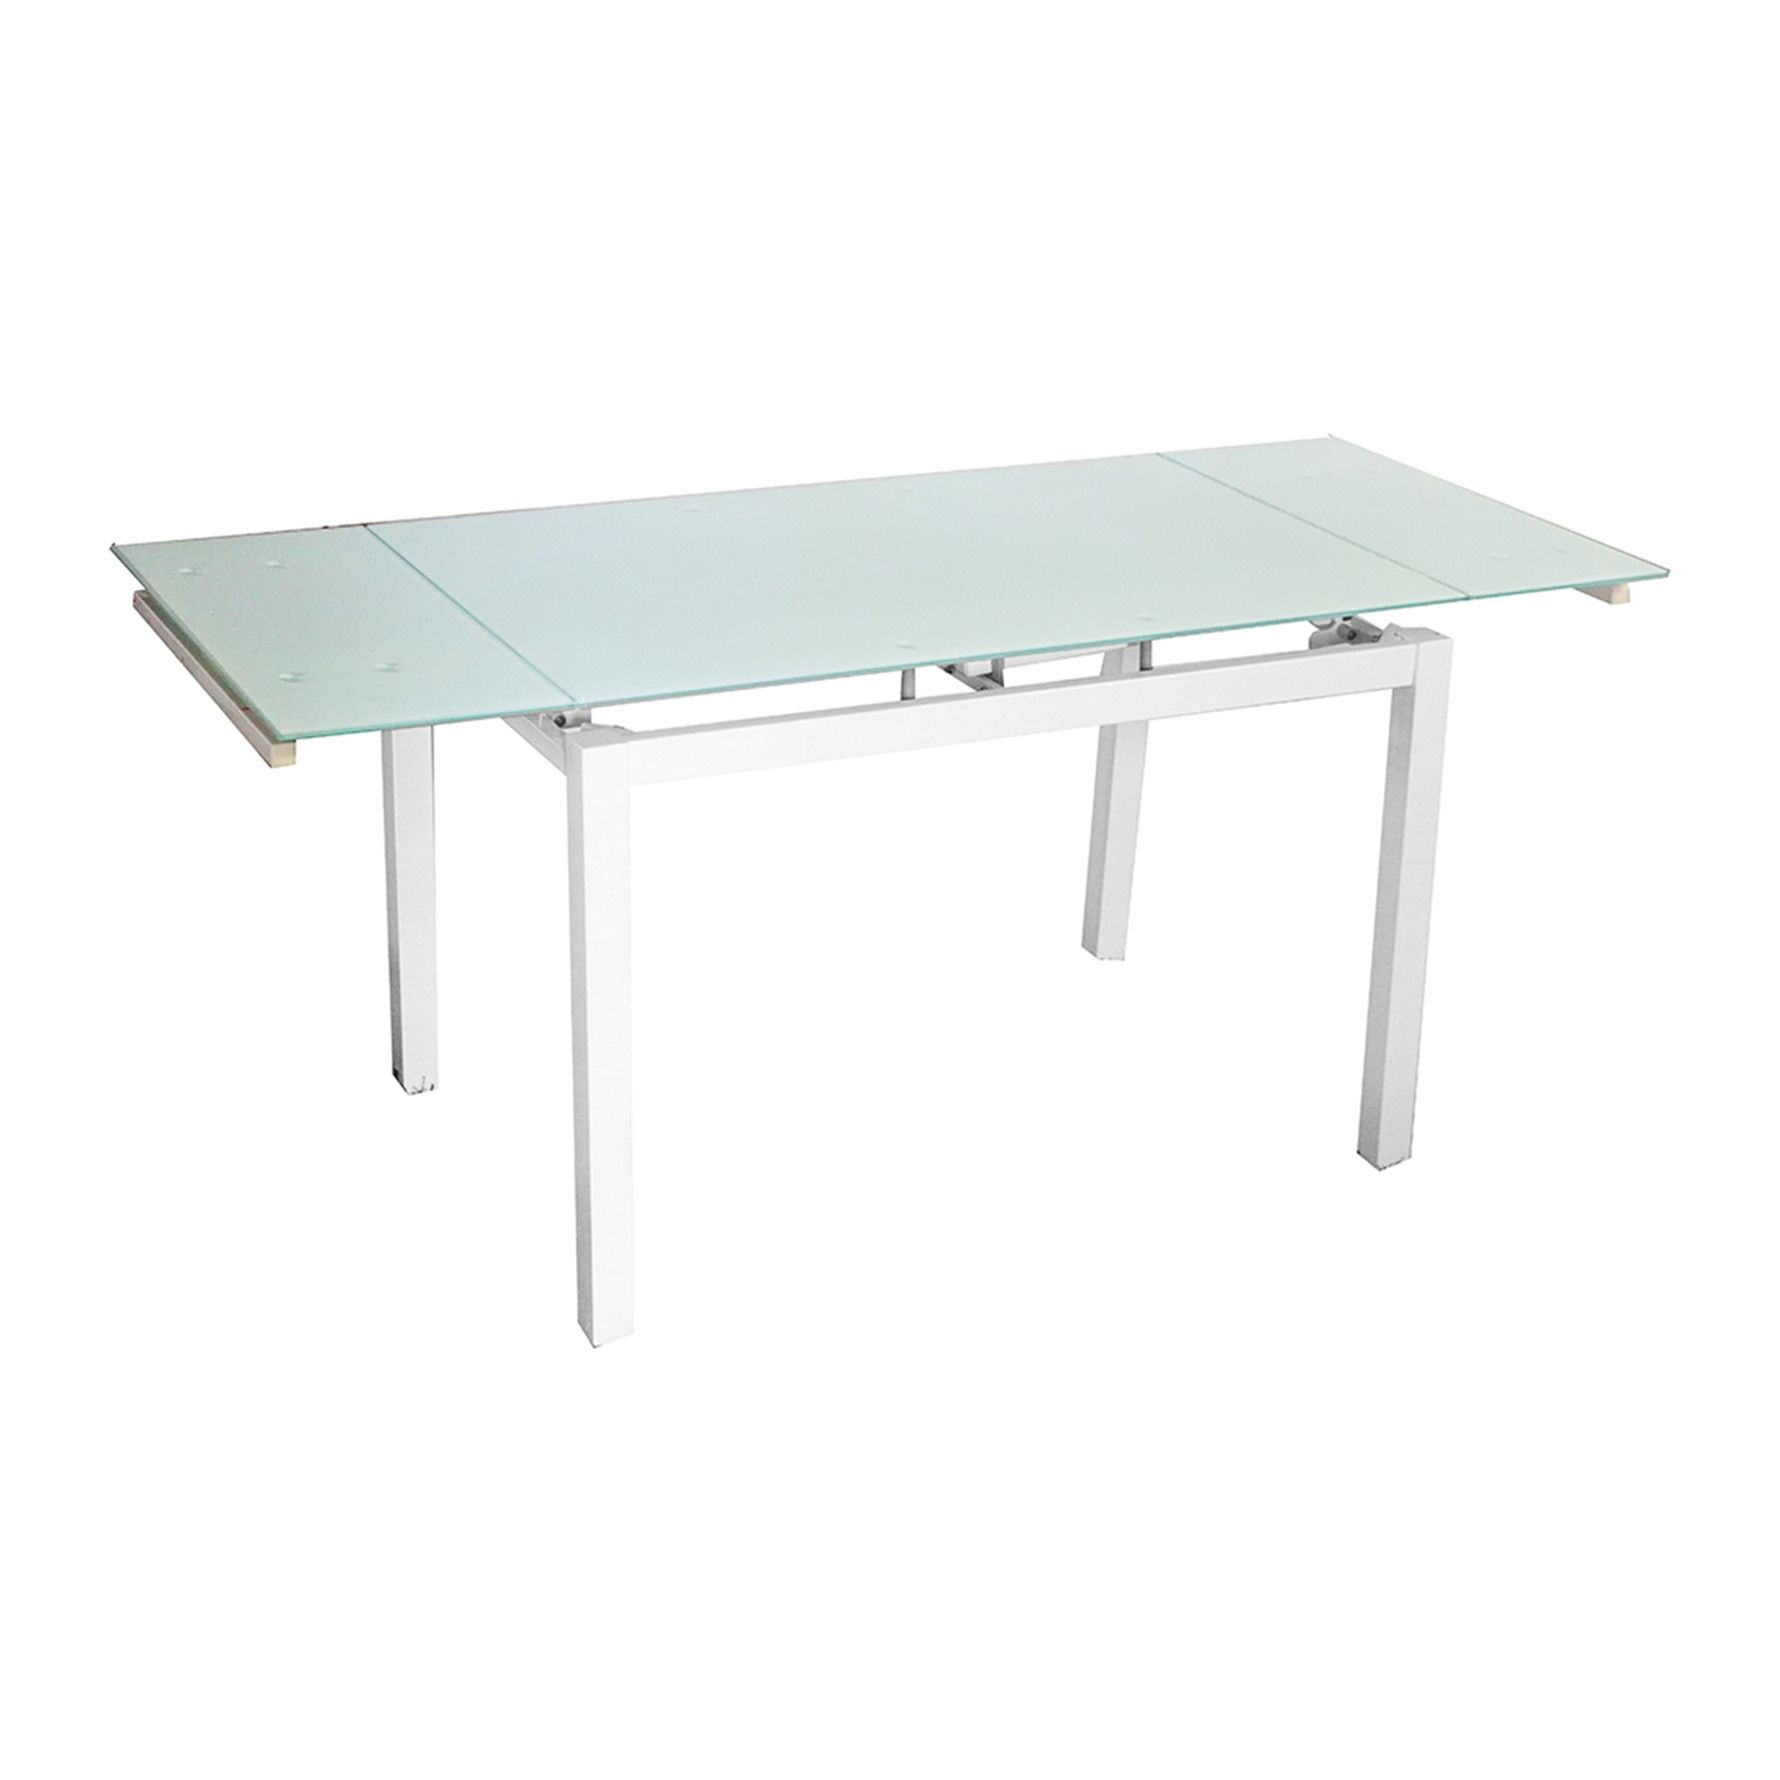 Table a manger blanche table a manger blanche solutions for Table a manger extensible